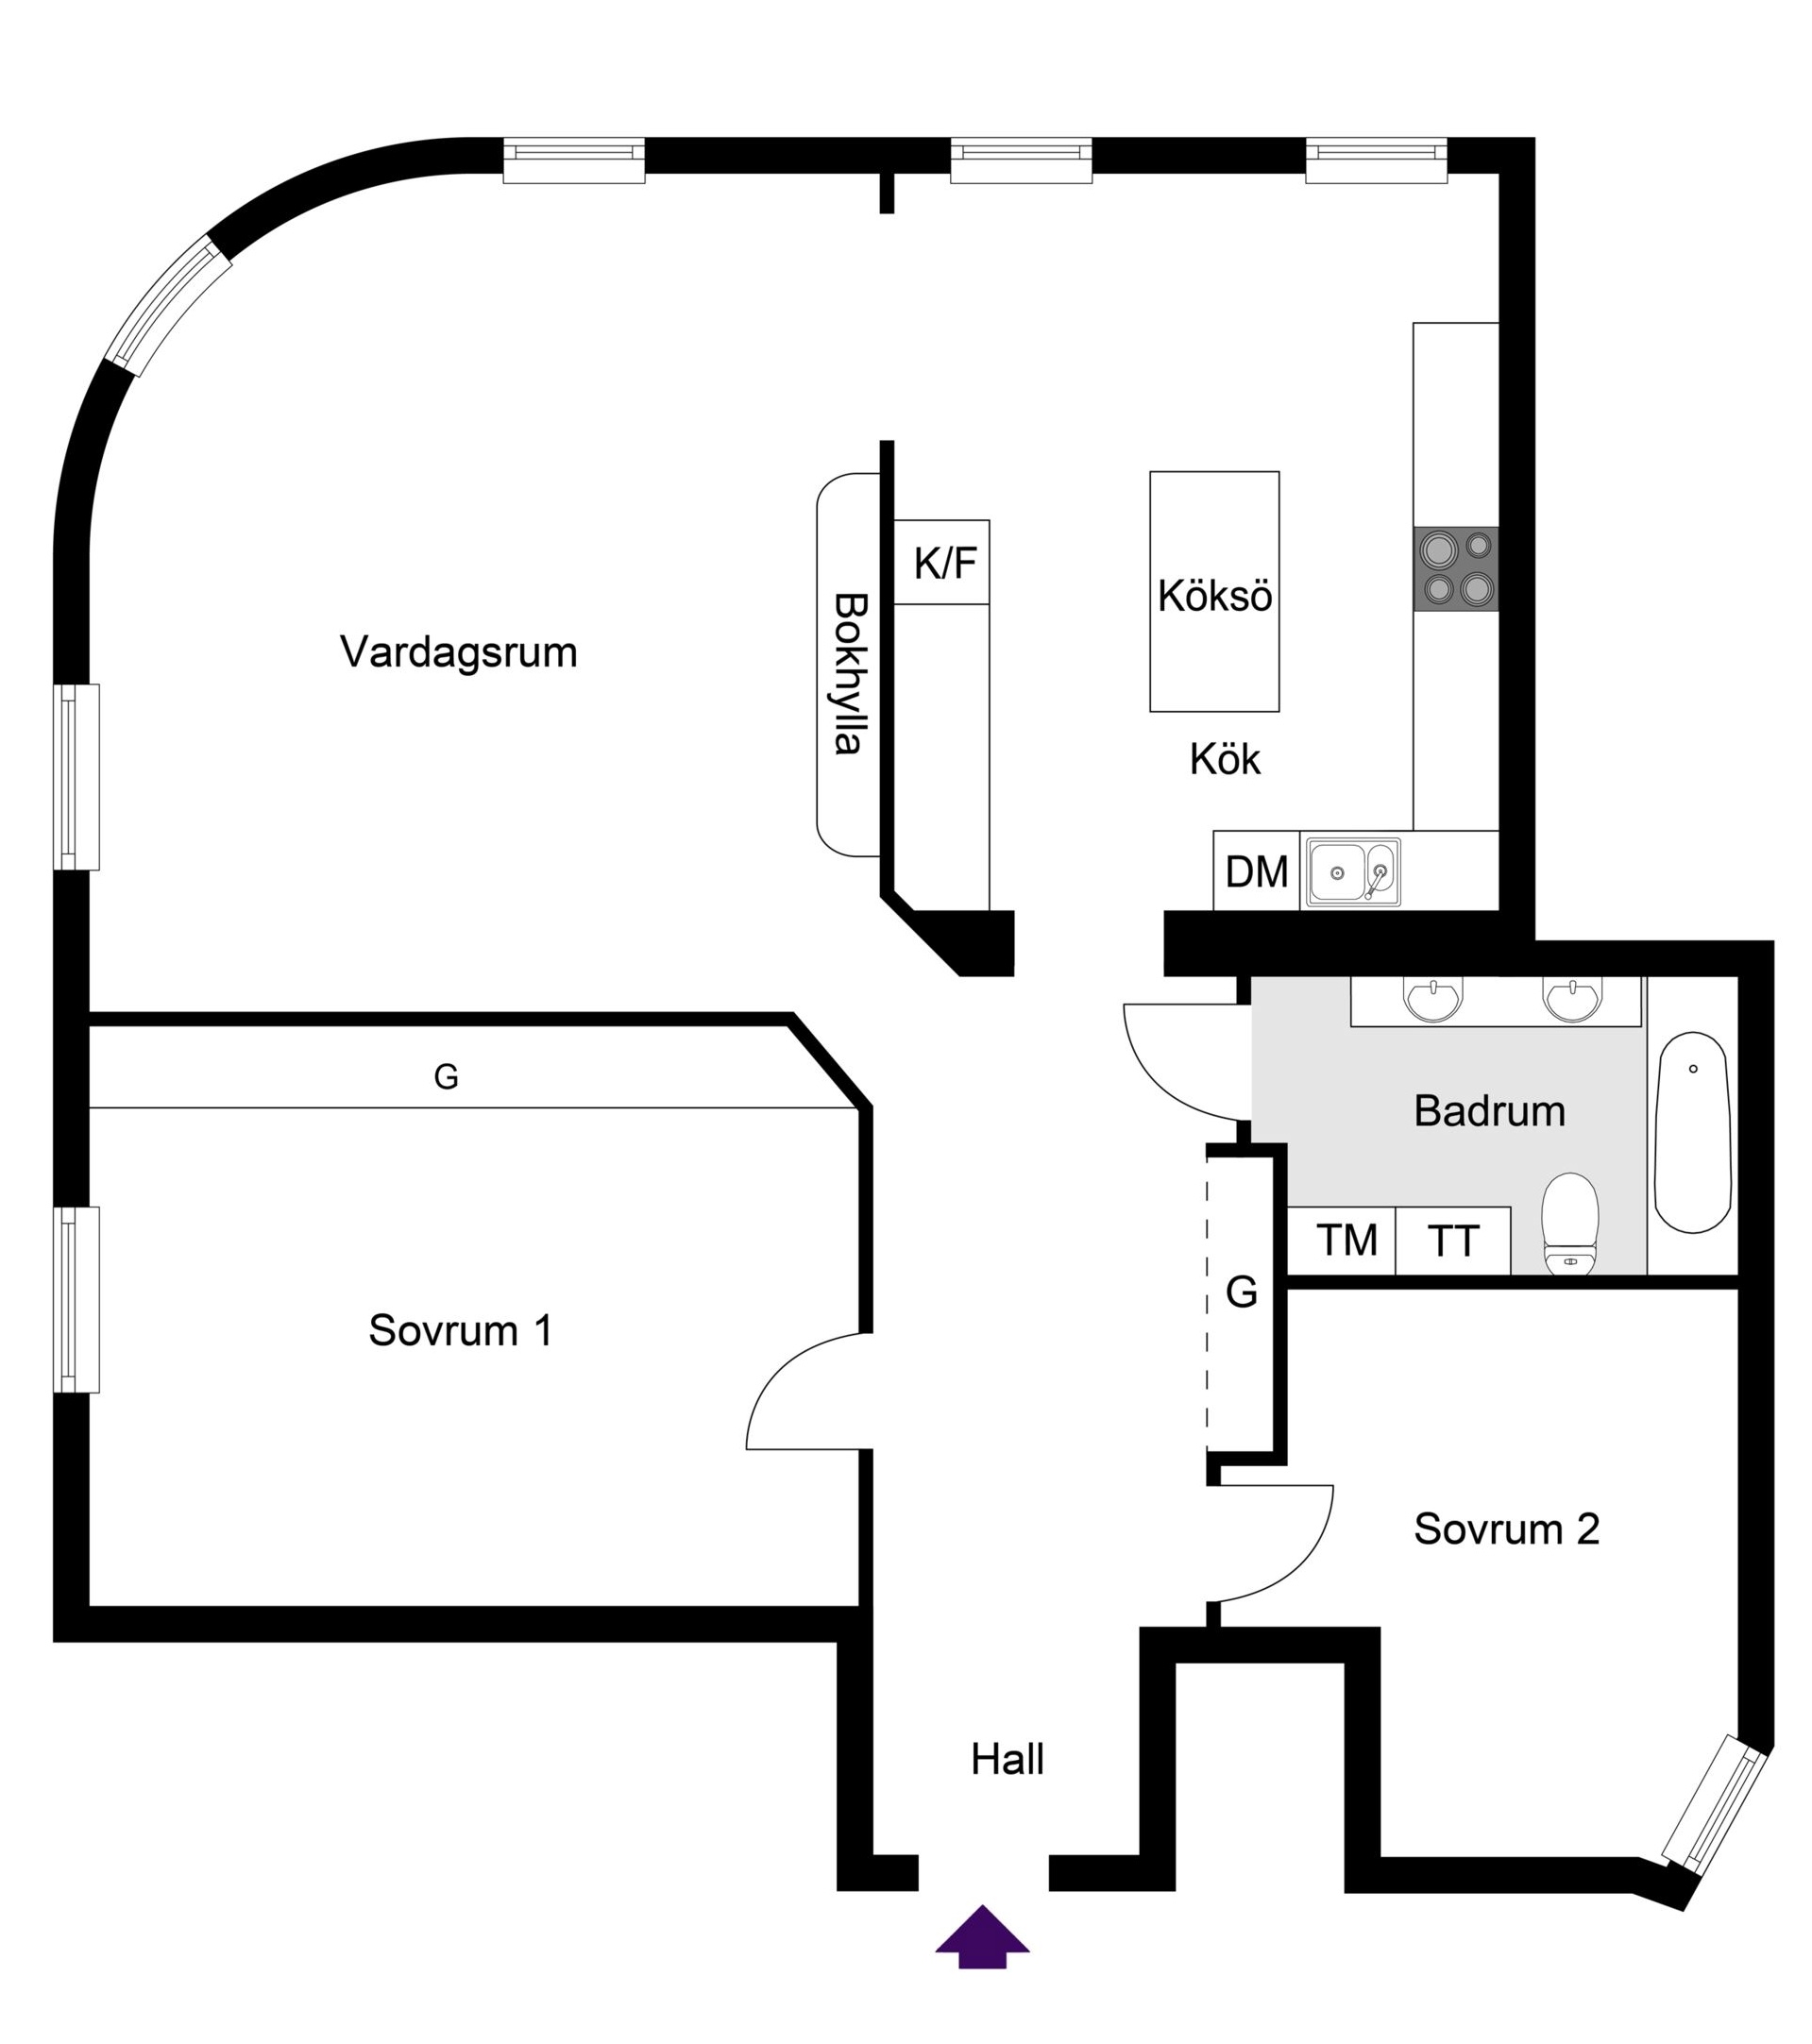 floorplan-90-kvm